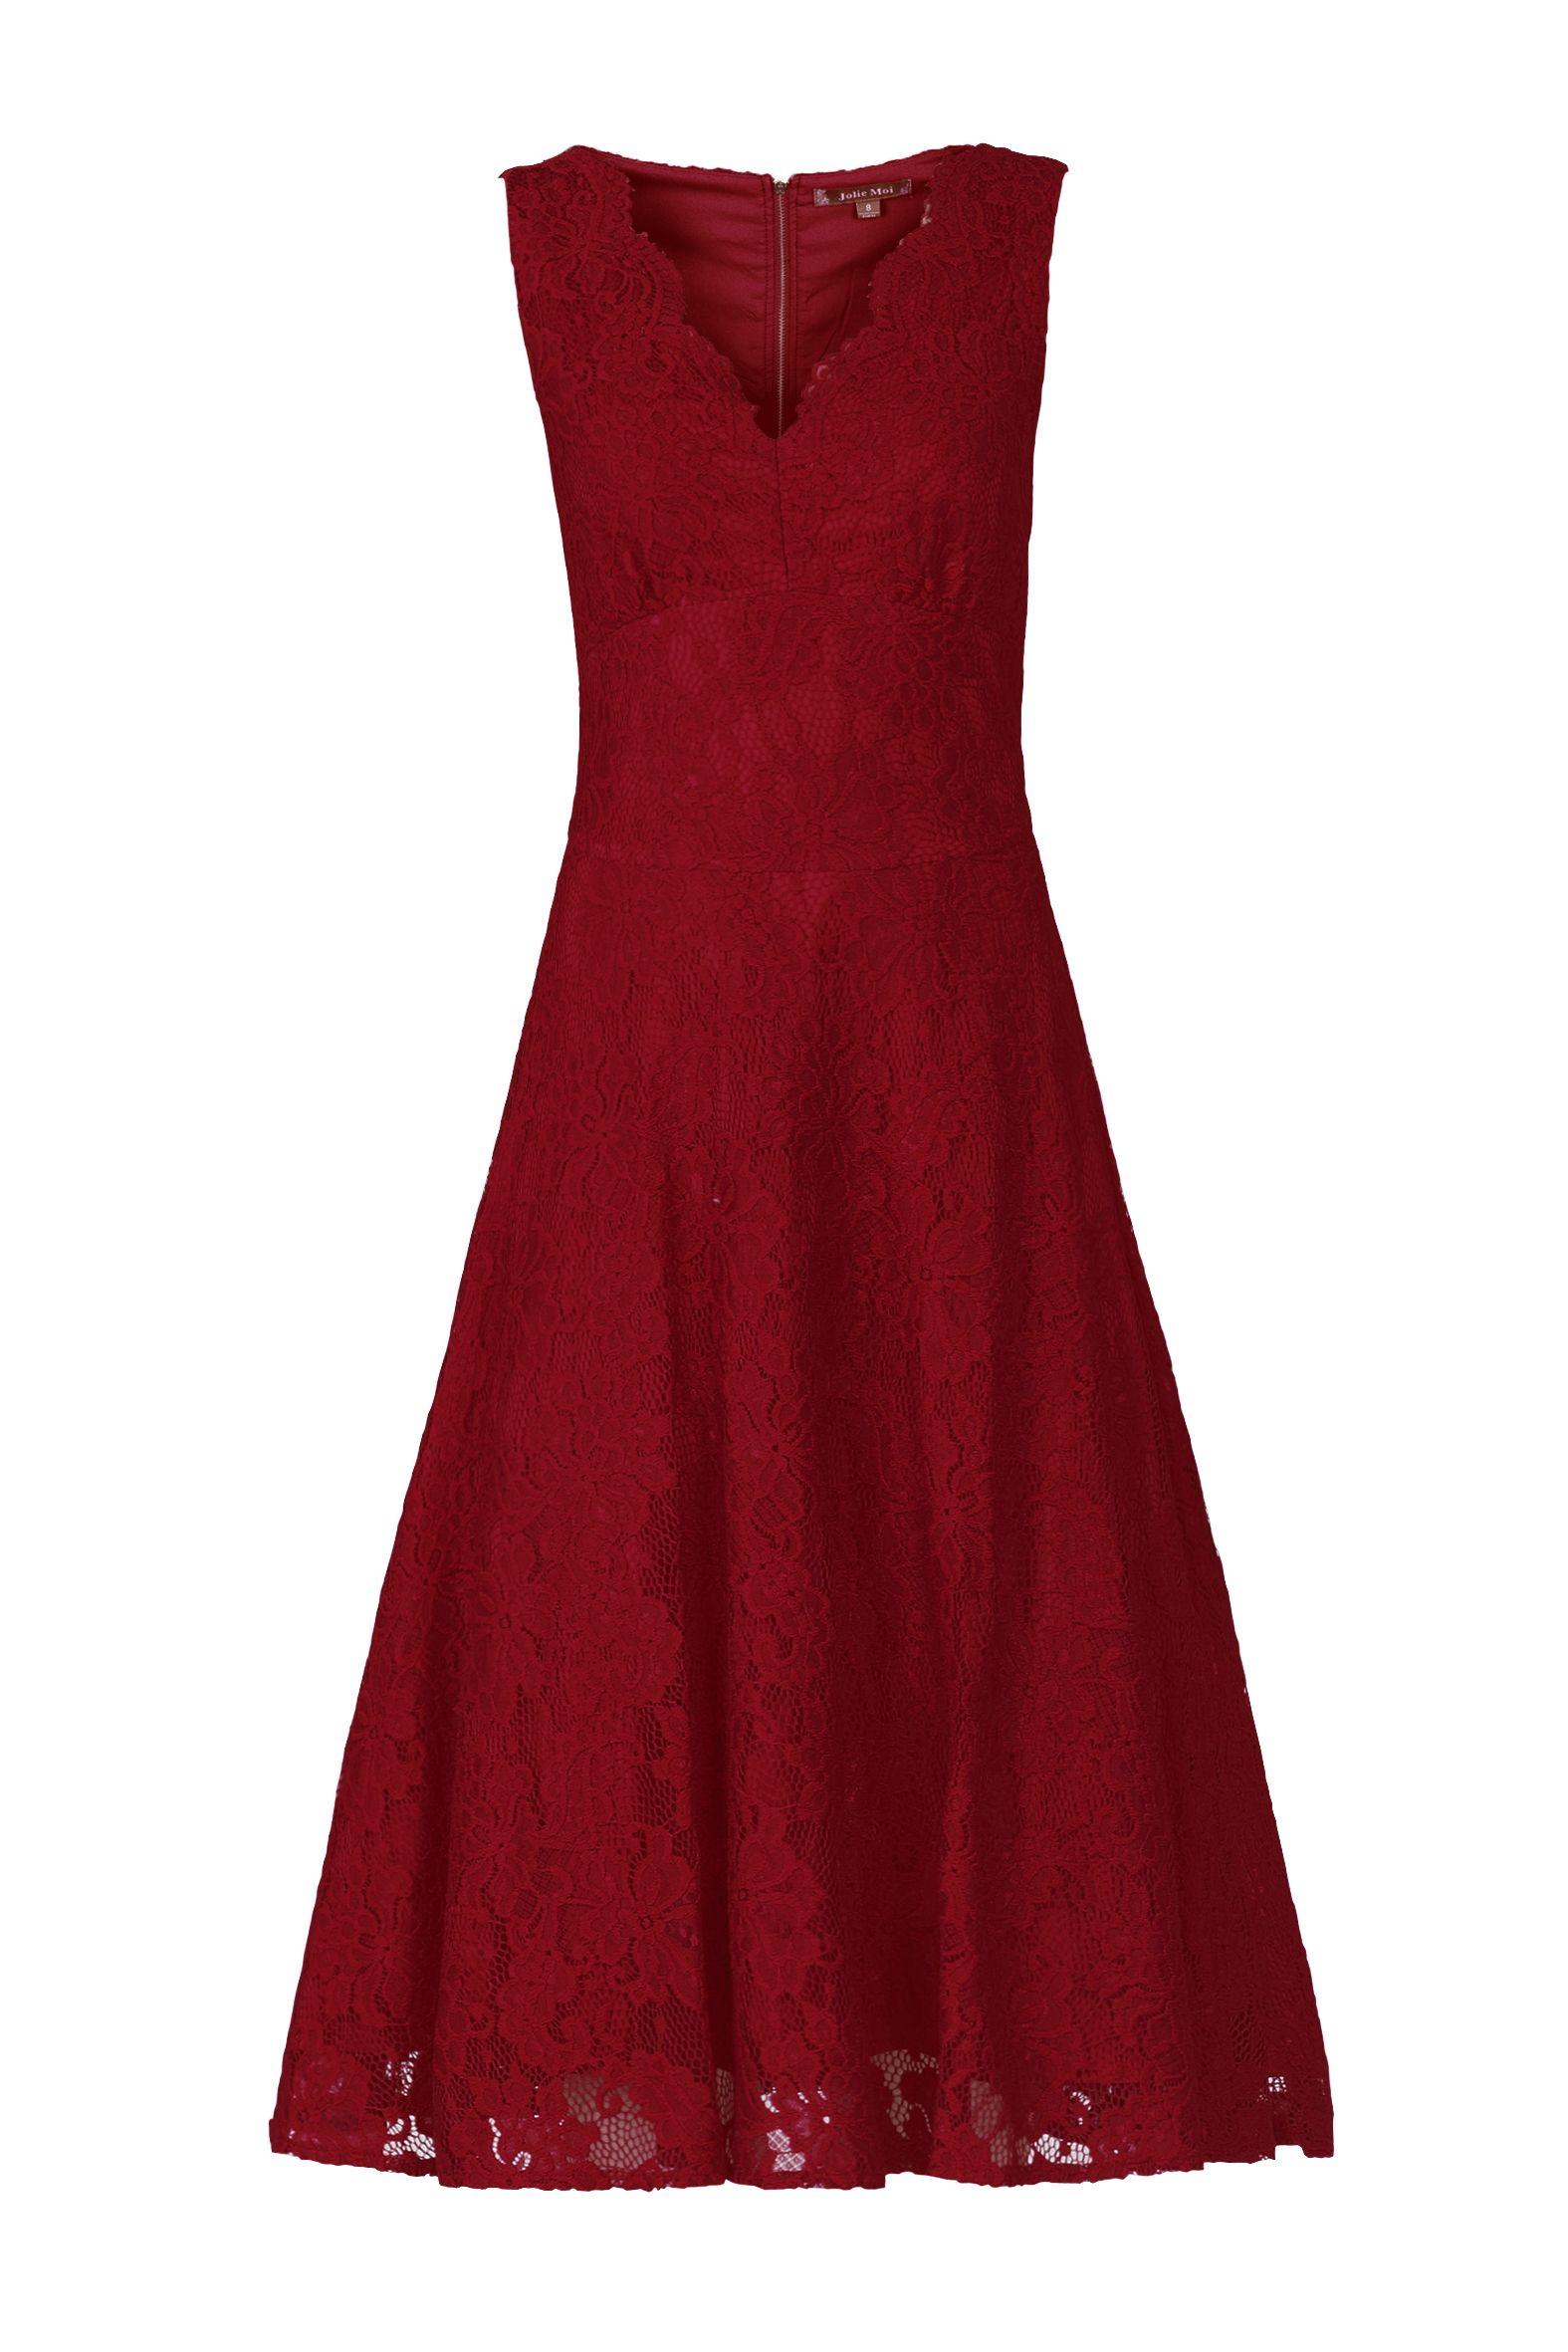 Jolie Moi Scalloped V Neck Lace Dress, Red